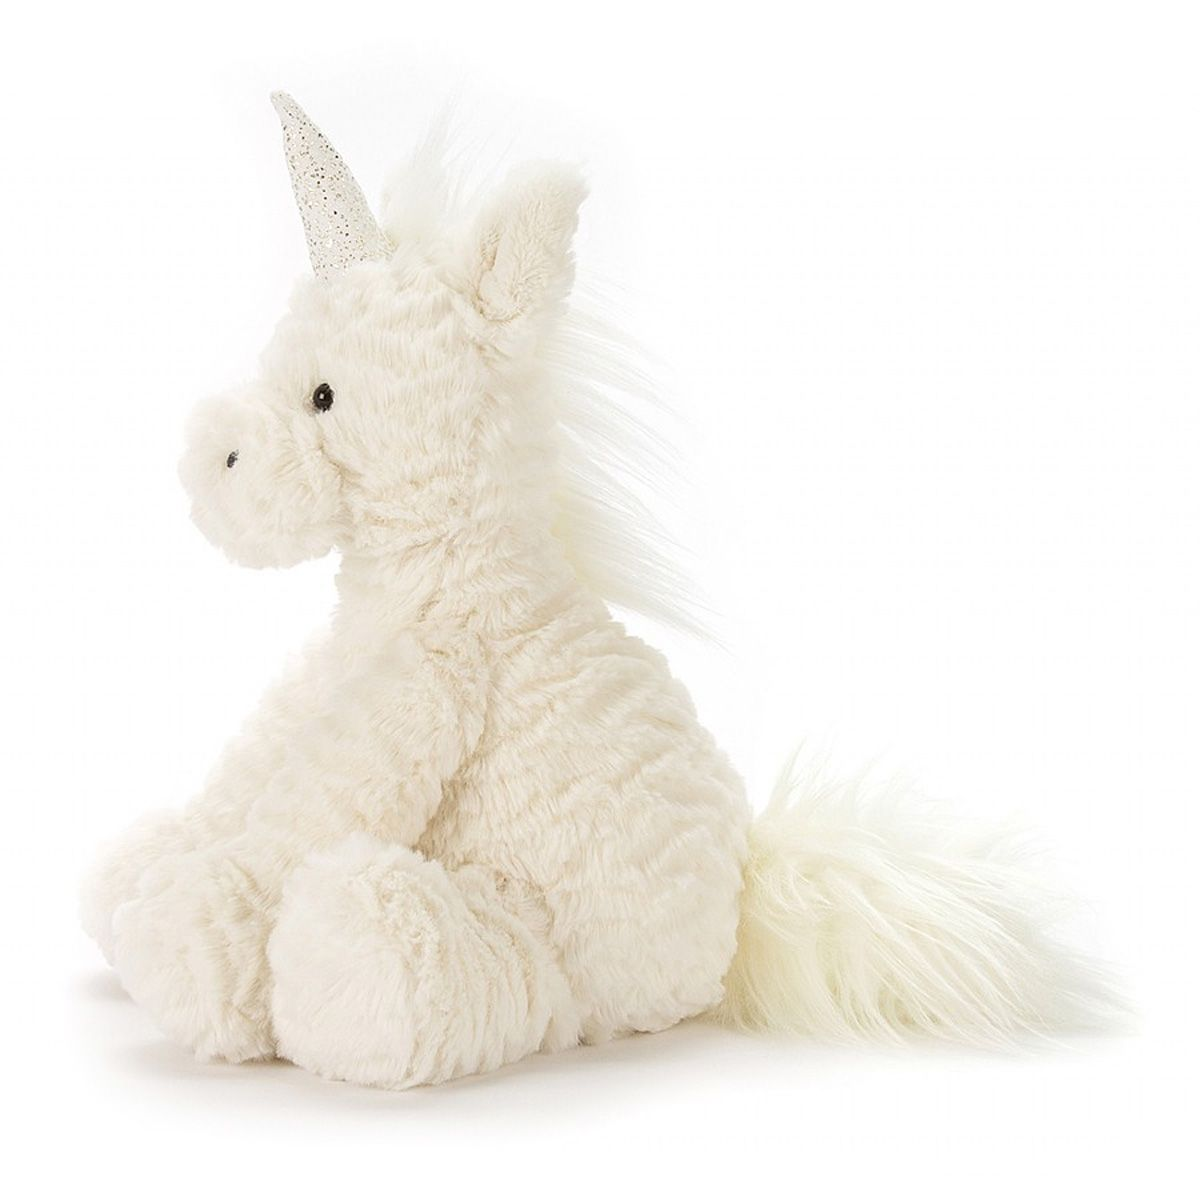 kuscheltier einhorn 39 fuddlewuddle unicorn 39 23 cm von jellycat kaufen. Black Bedroom Furniture Sets. Home Design Ideas